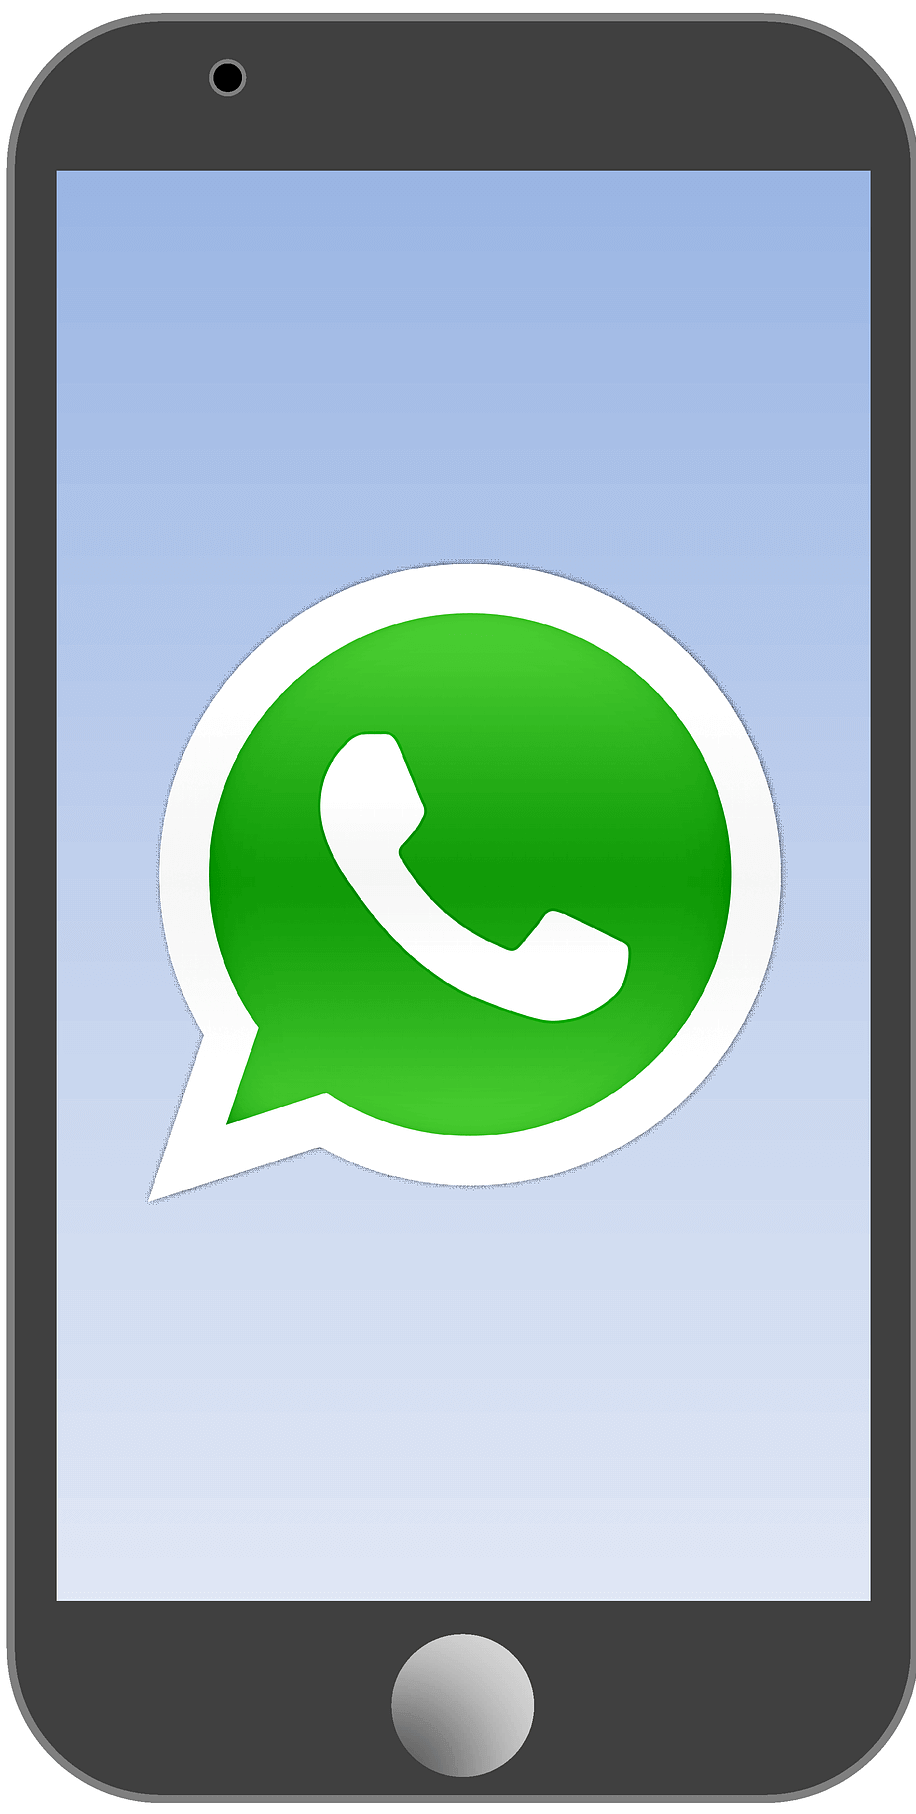 Download gbwhatsapp apk 7.81 latest version